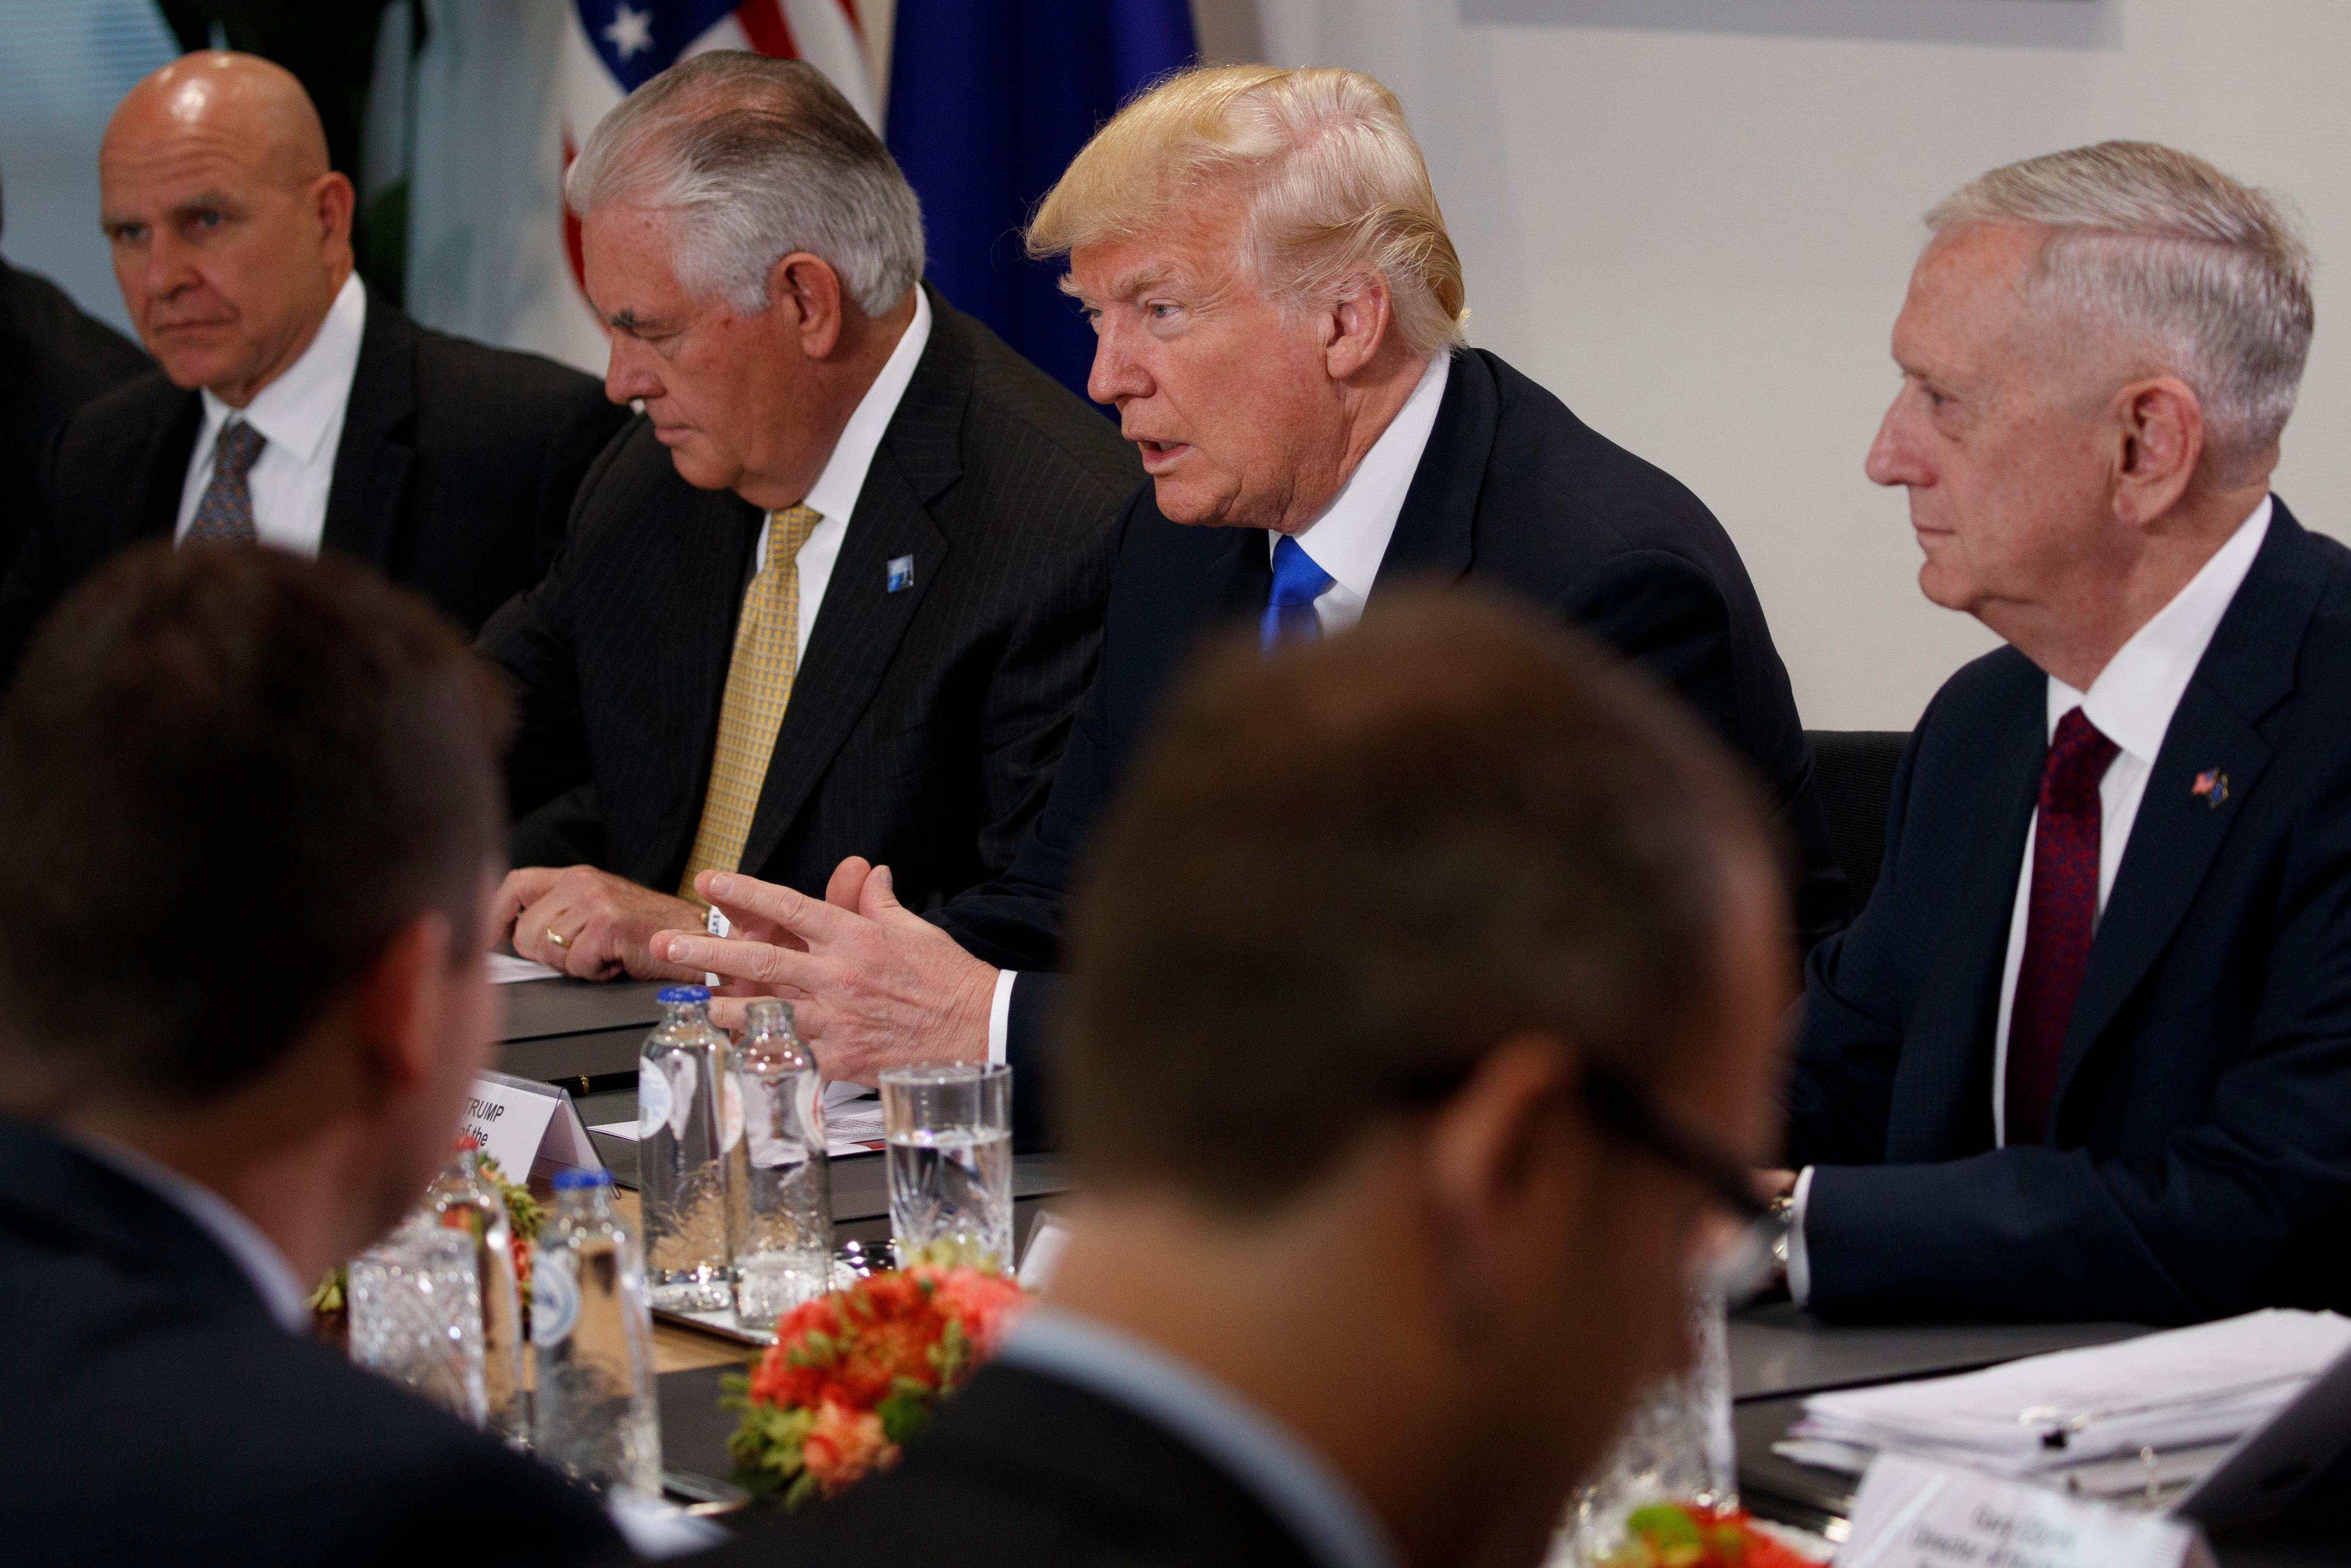 President Donald Trump speaks during a meeting with President of the European Commission Jean-Claude Junker and European Council President Donald Tusk at European Union headquarters, Thursday, May 25, 2017, in Brussels. From left, National Security Adviser H.R. McMaster, Secretary of State Rex Tillerson, Trump, and Secretary of Defense Jim Mattis. (AP Photo/Evan Vucci)